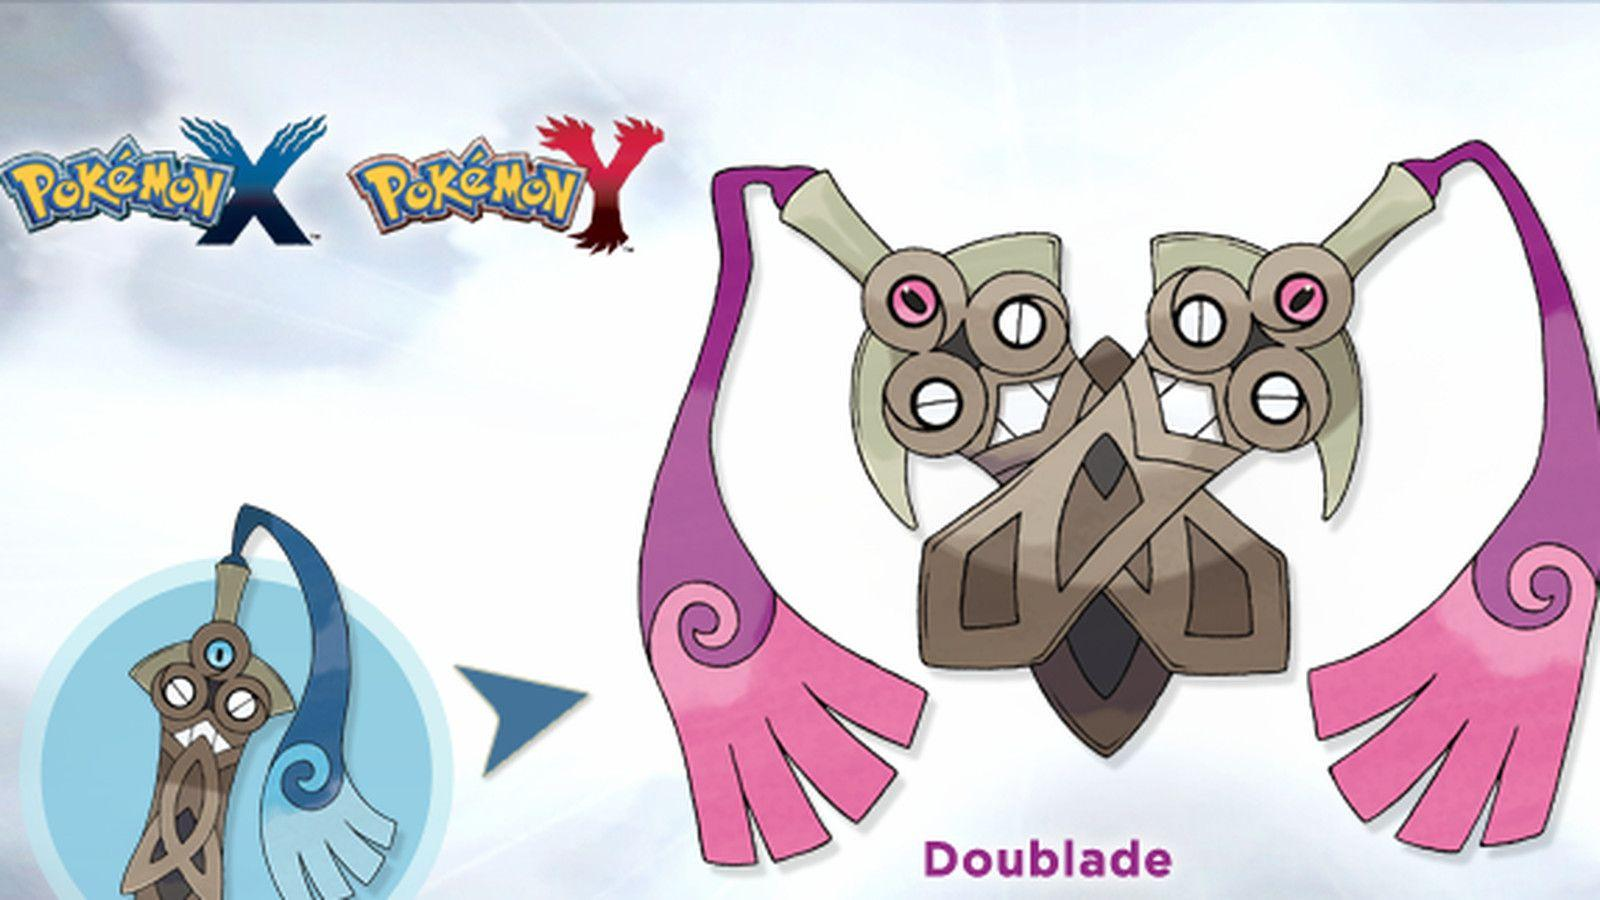 Pokemon X and Y's newest evolution is a double